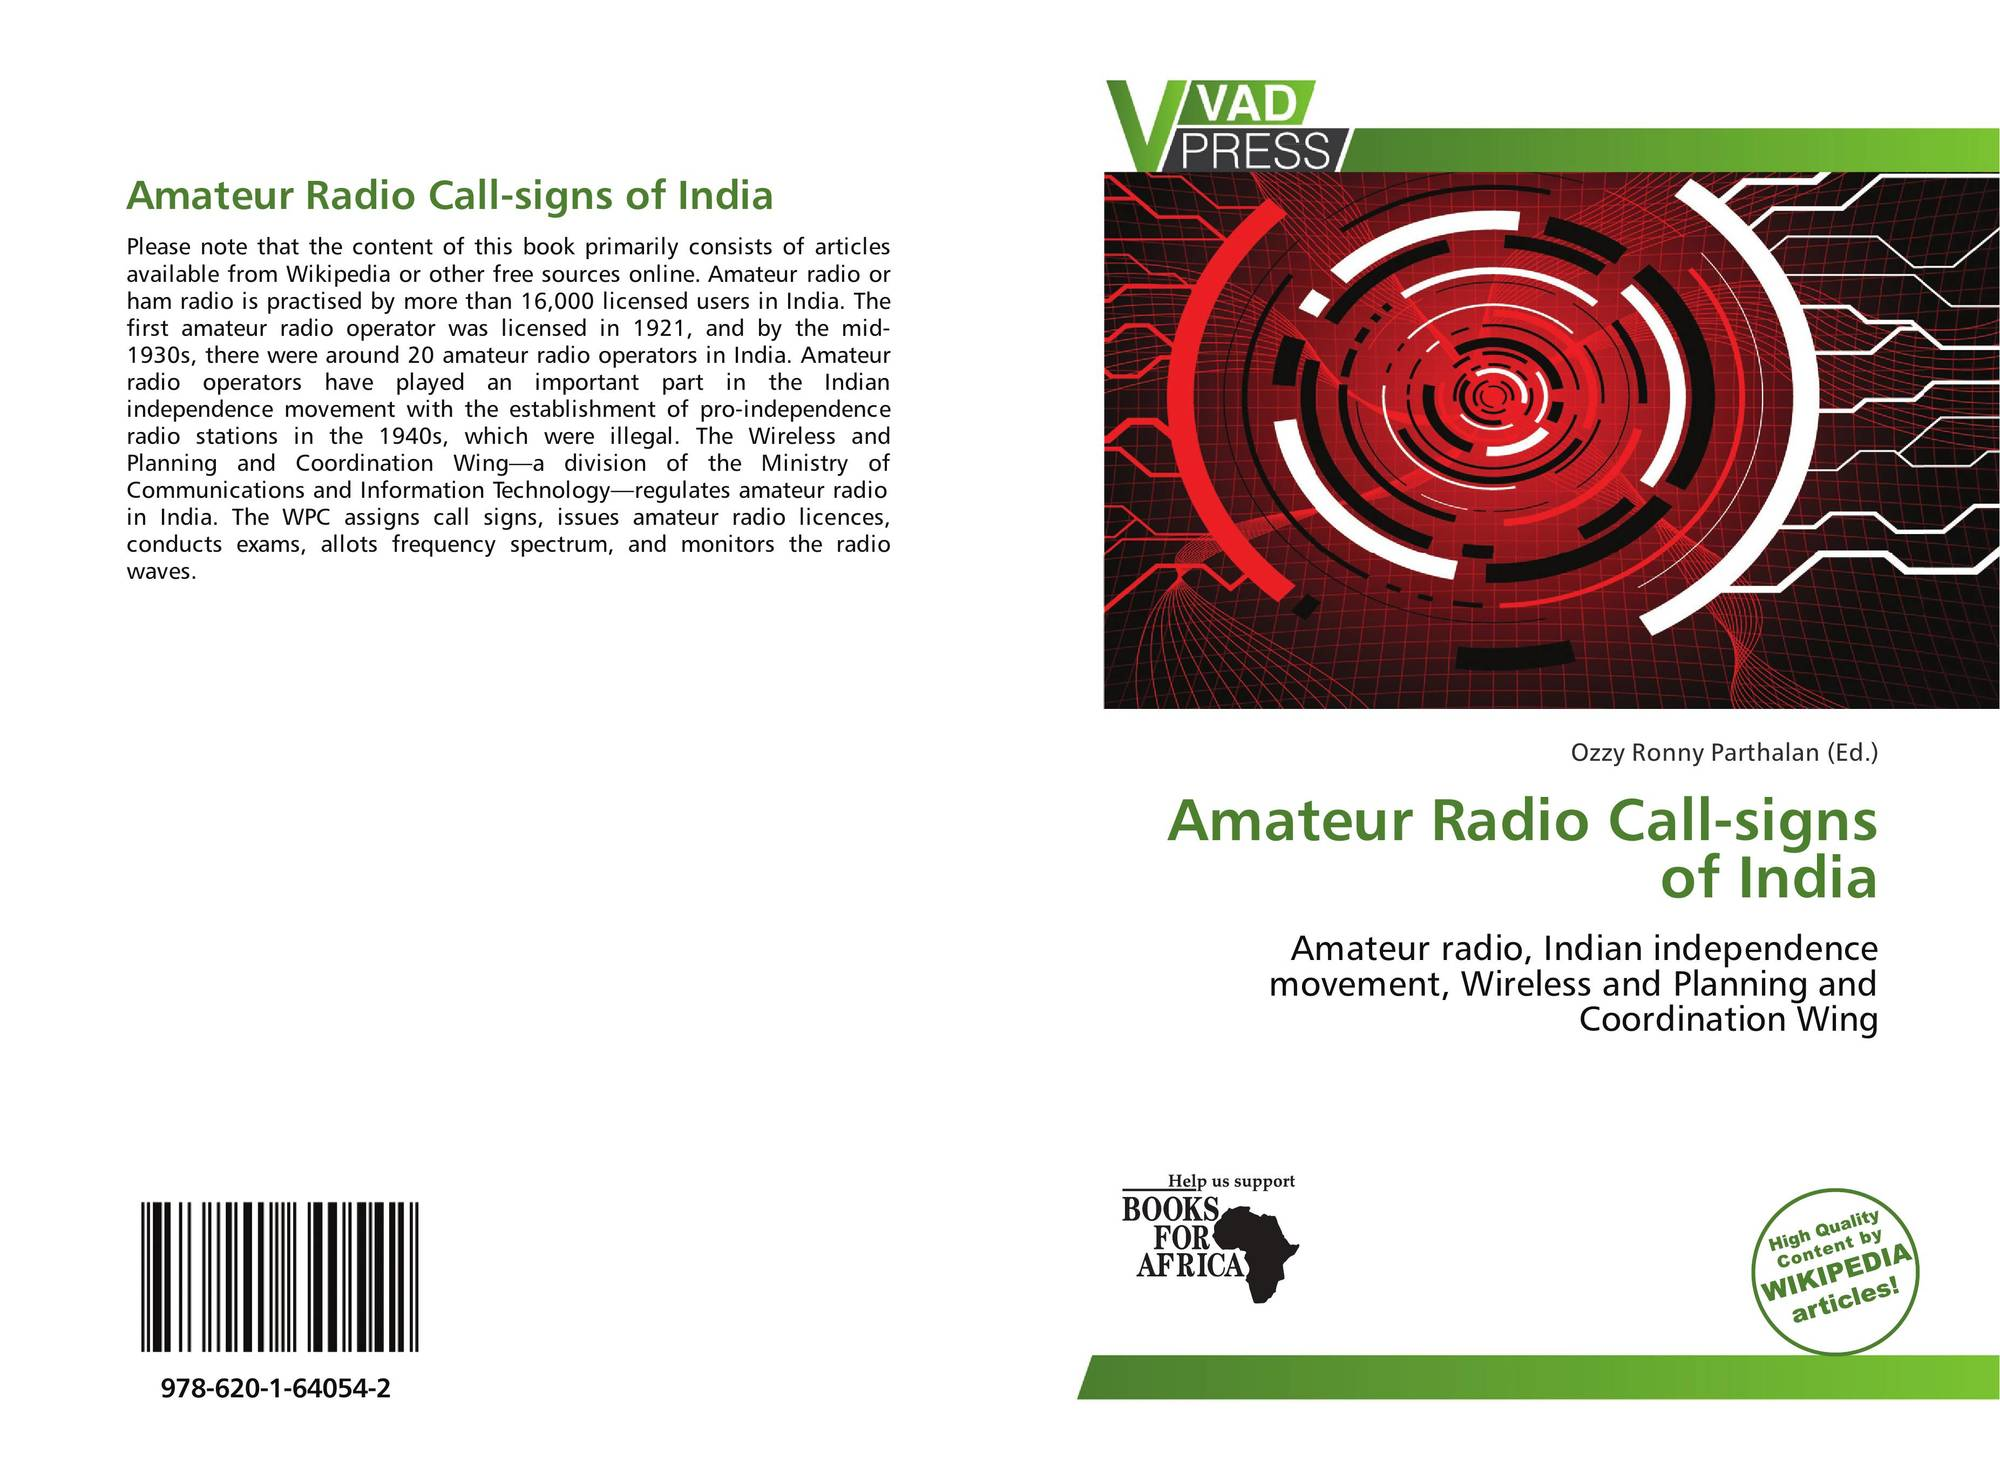 Theme, will availible amateur callsigns